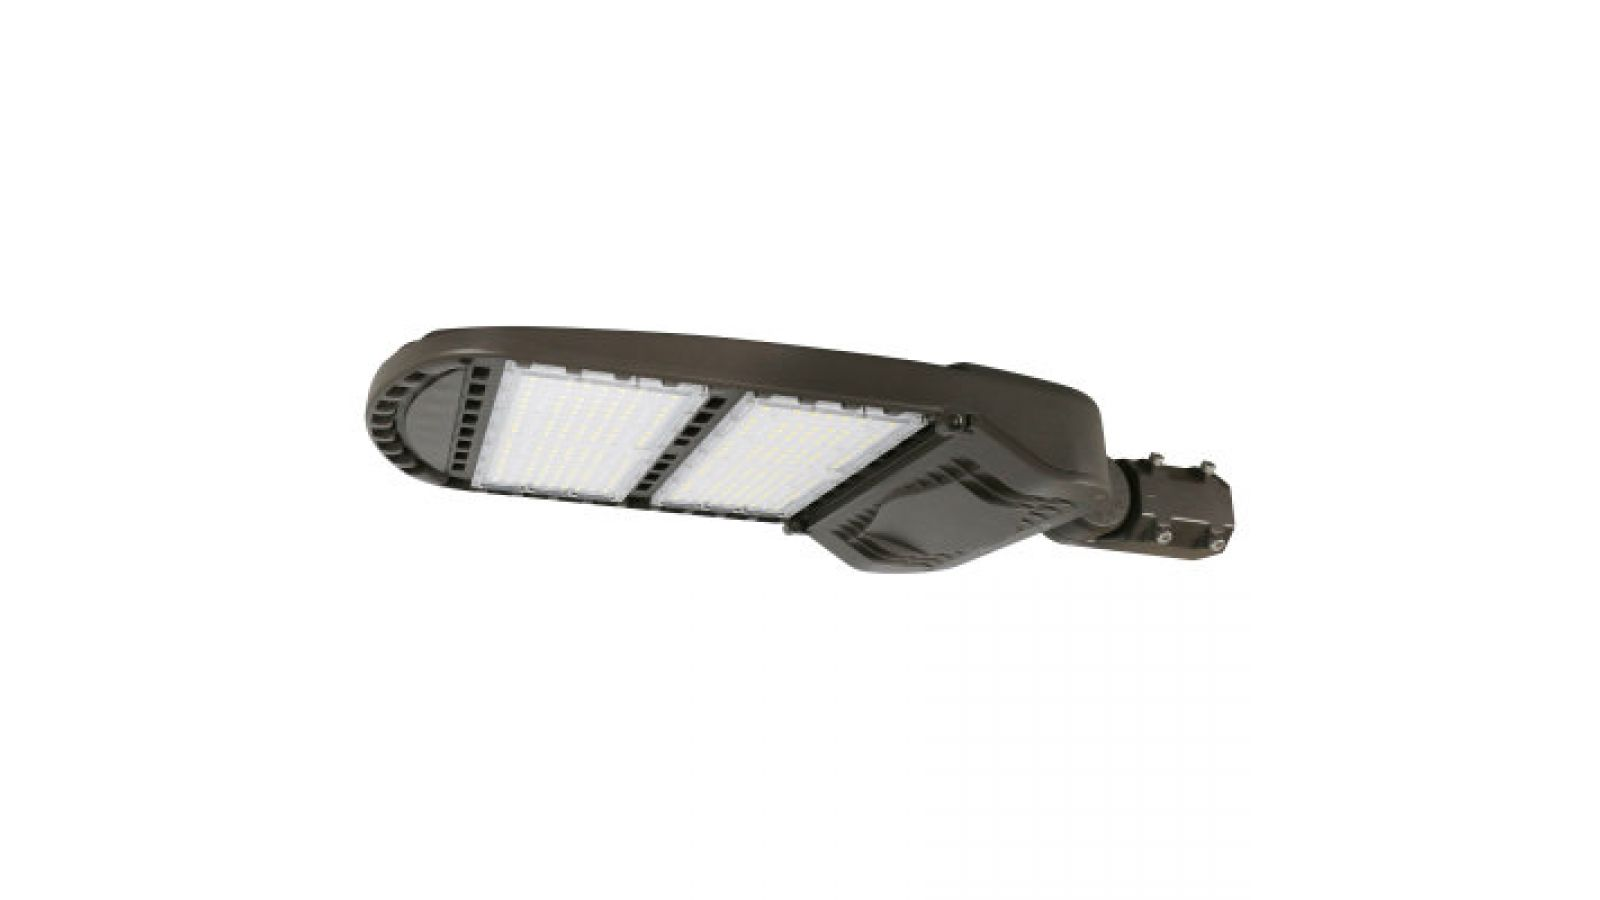 SYLVANIA ValueLED Area / Flood Light Luminaire family